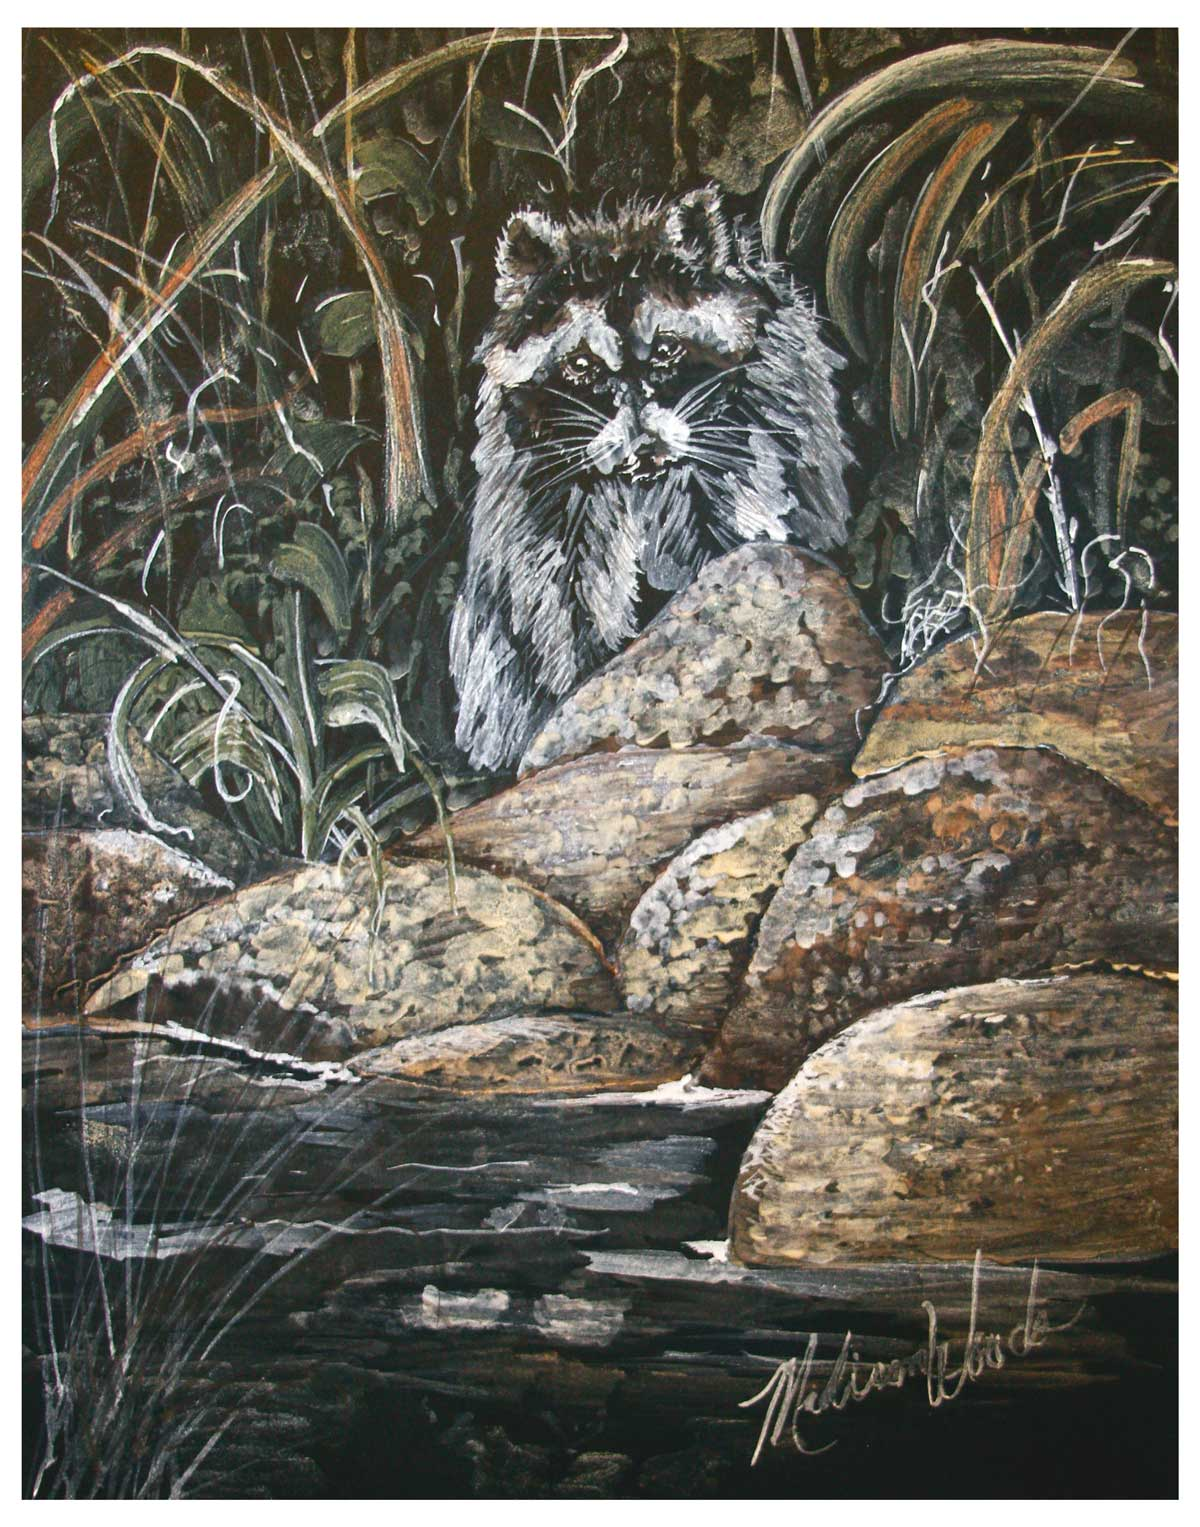 'Raccoon on the Rocks' in Ozark pigments by Madison Woods.